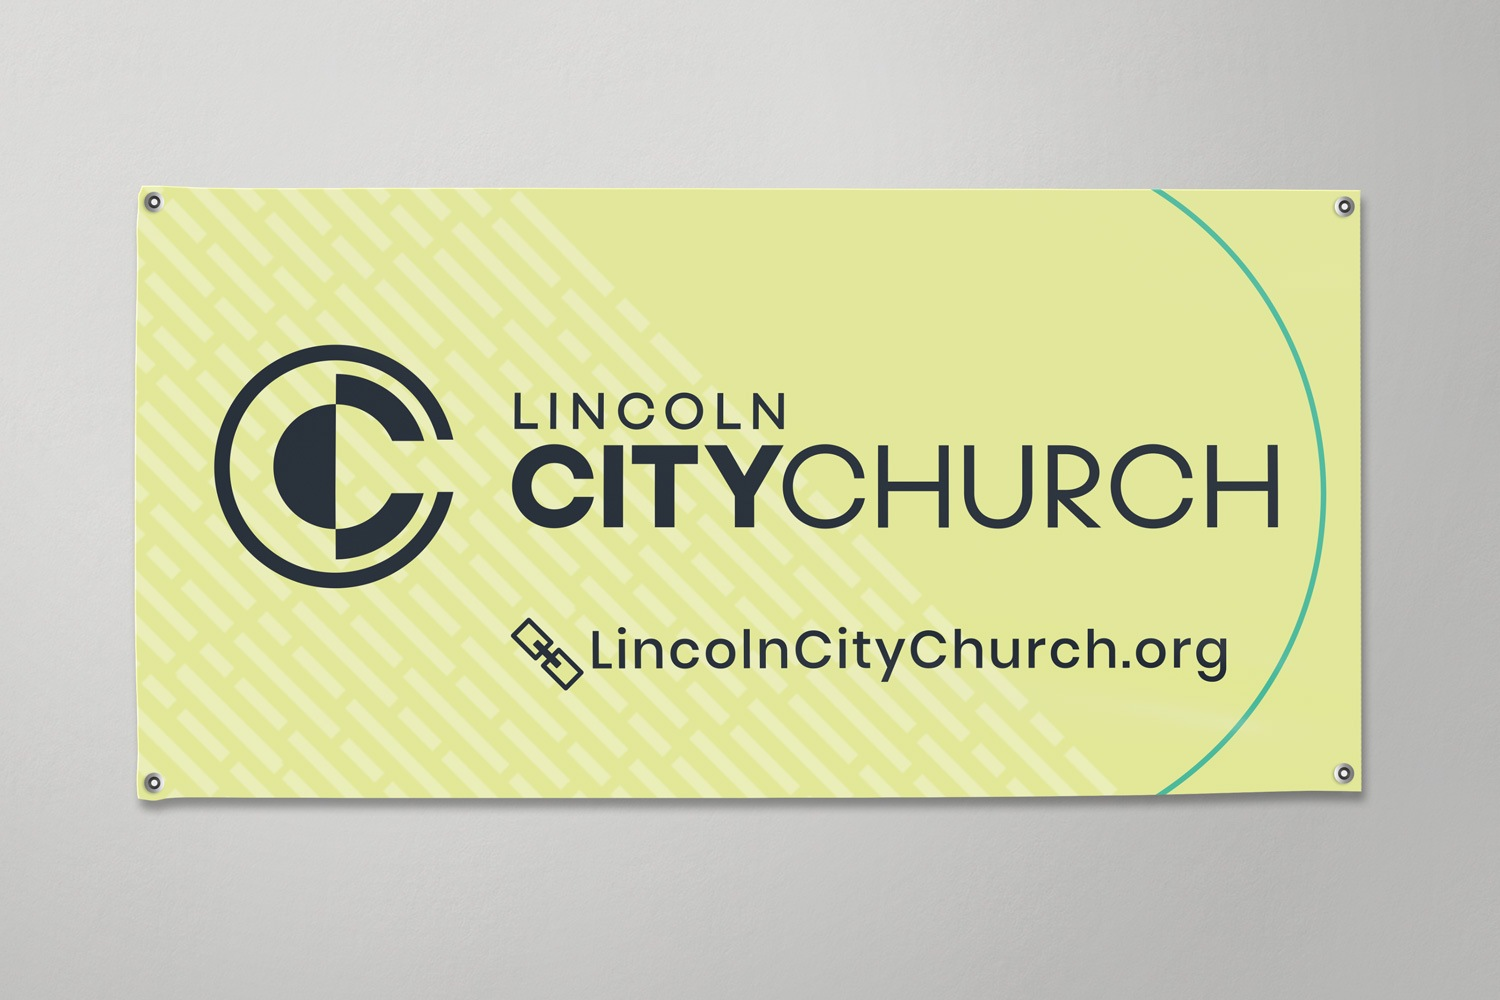 quality church vinyl banners custom design and printing for church branding,, marketing, oureach